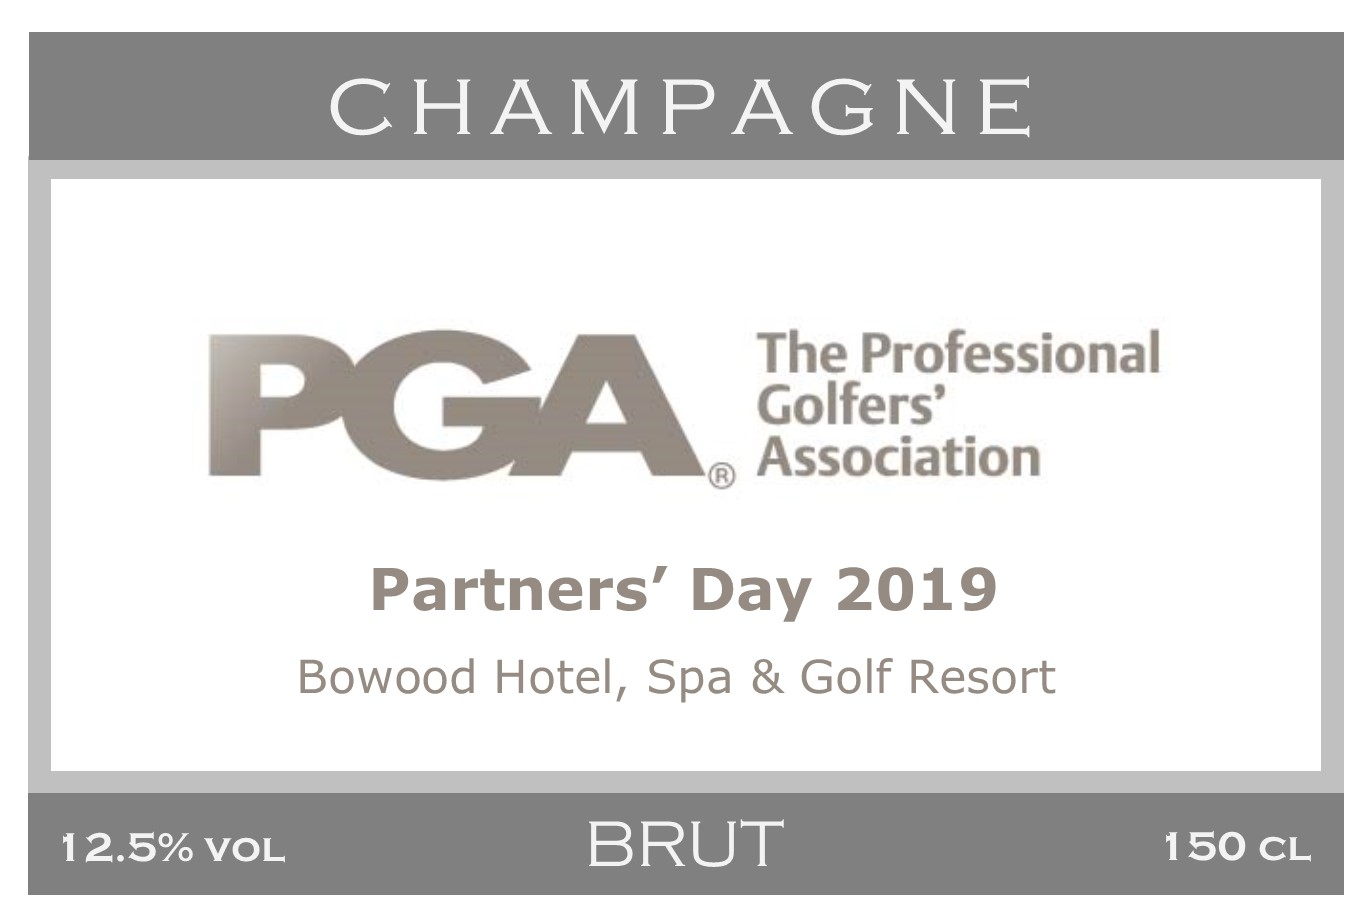 PGA Awards Branded Champagne Label